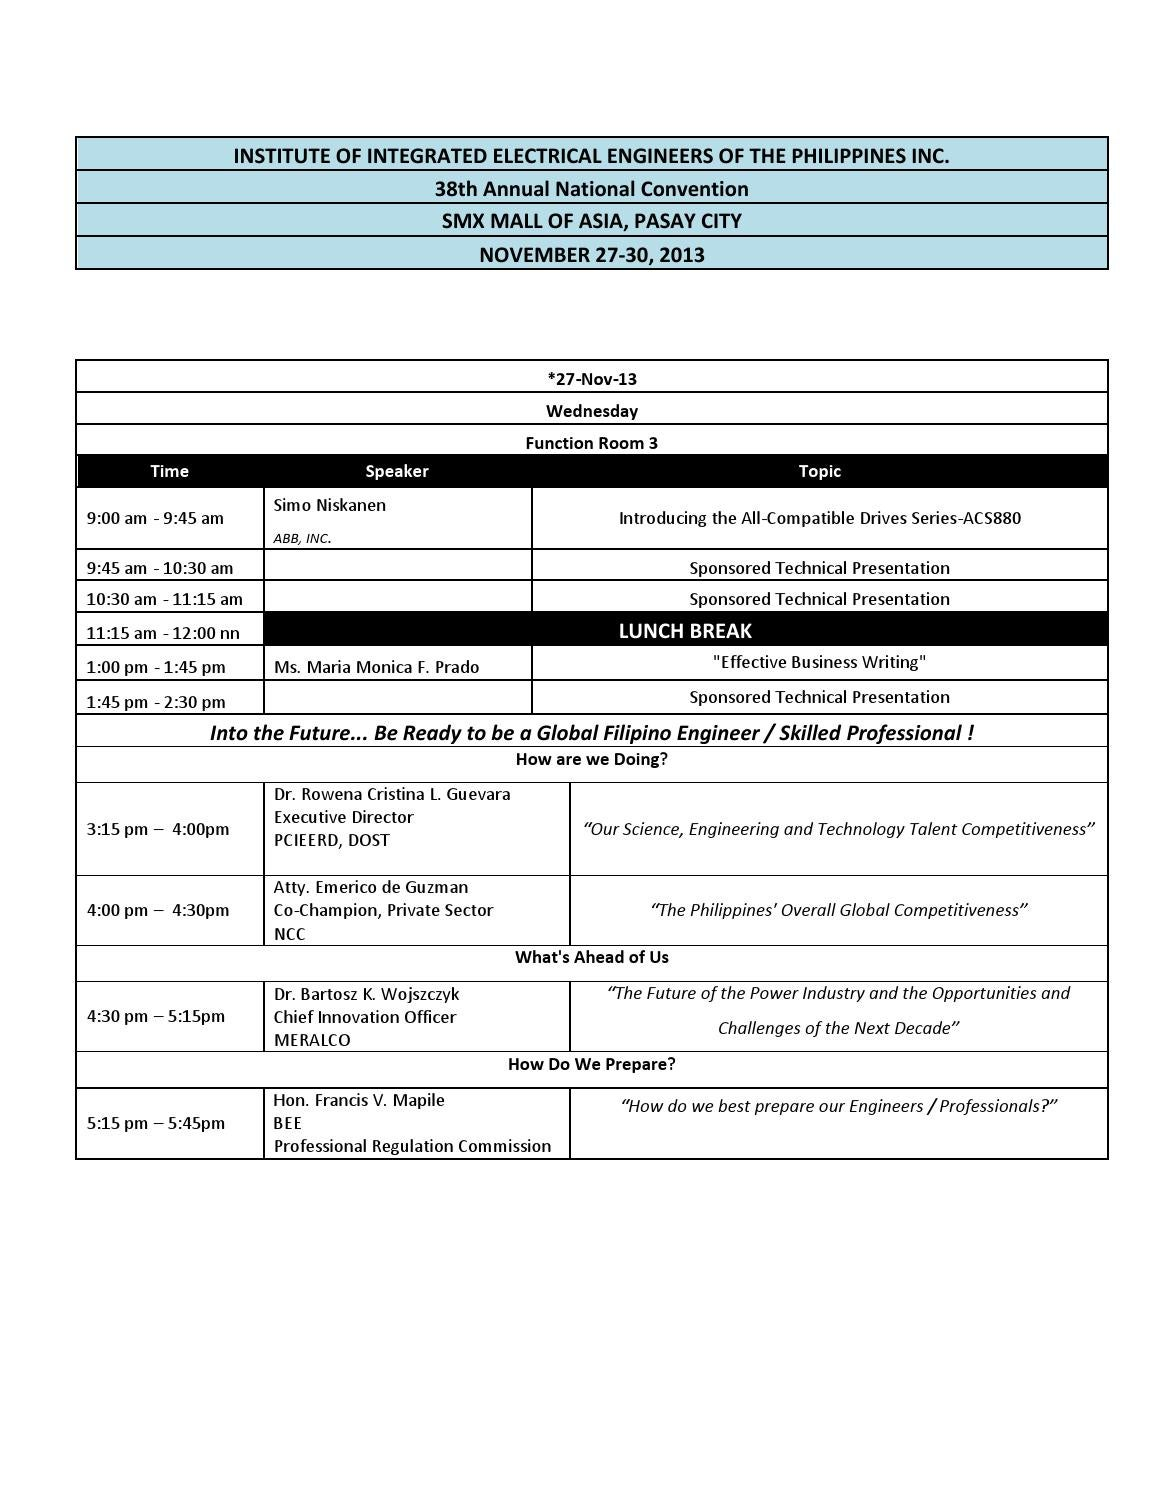 38th Annual National Convention List Of Technical